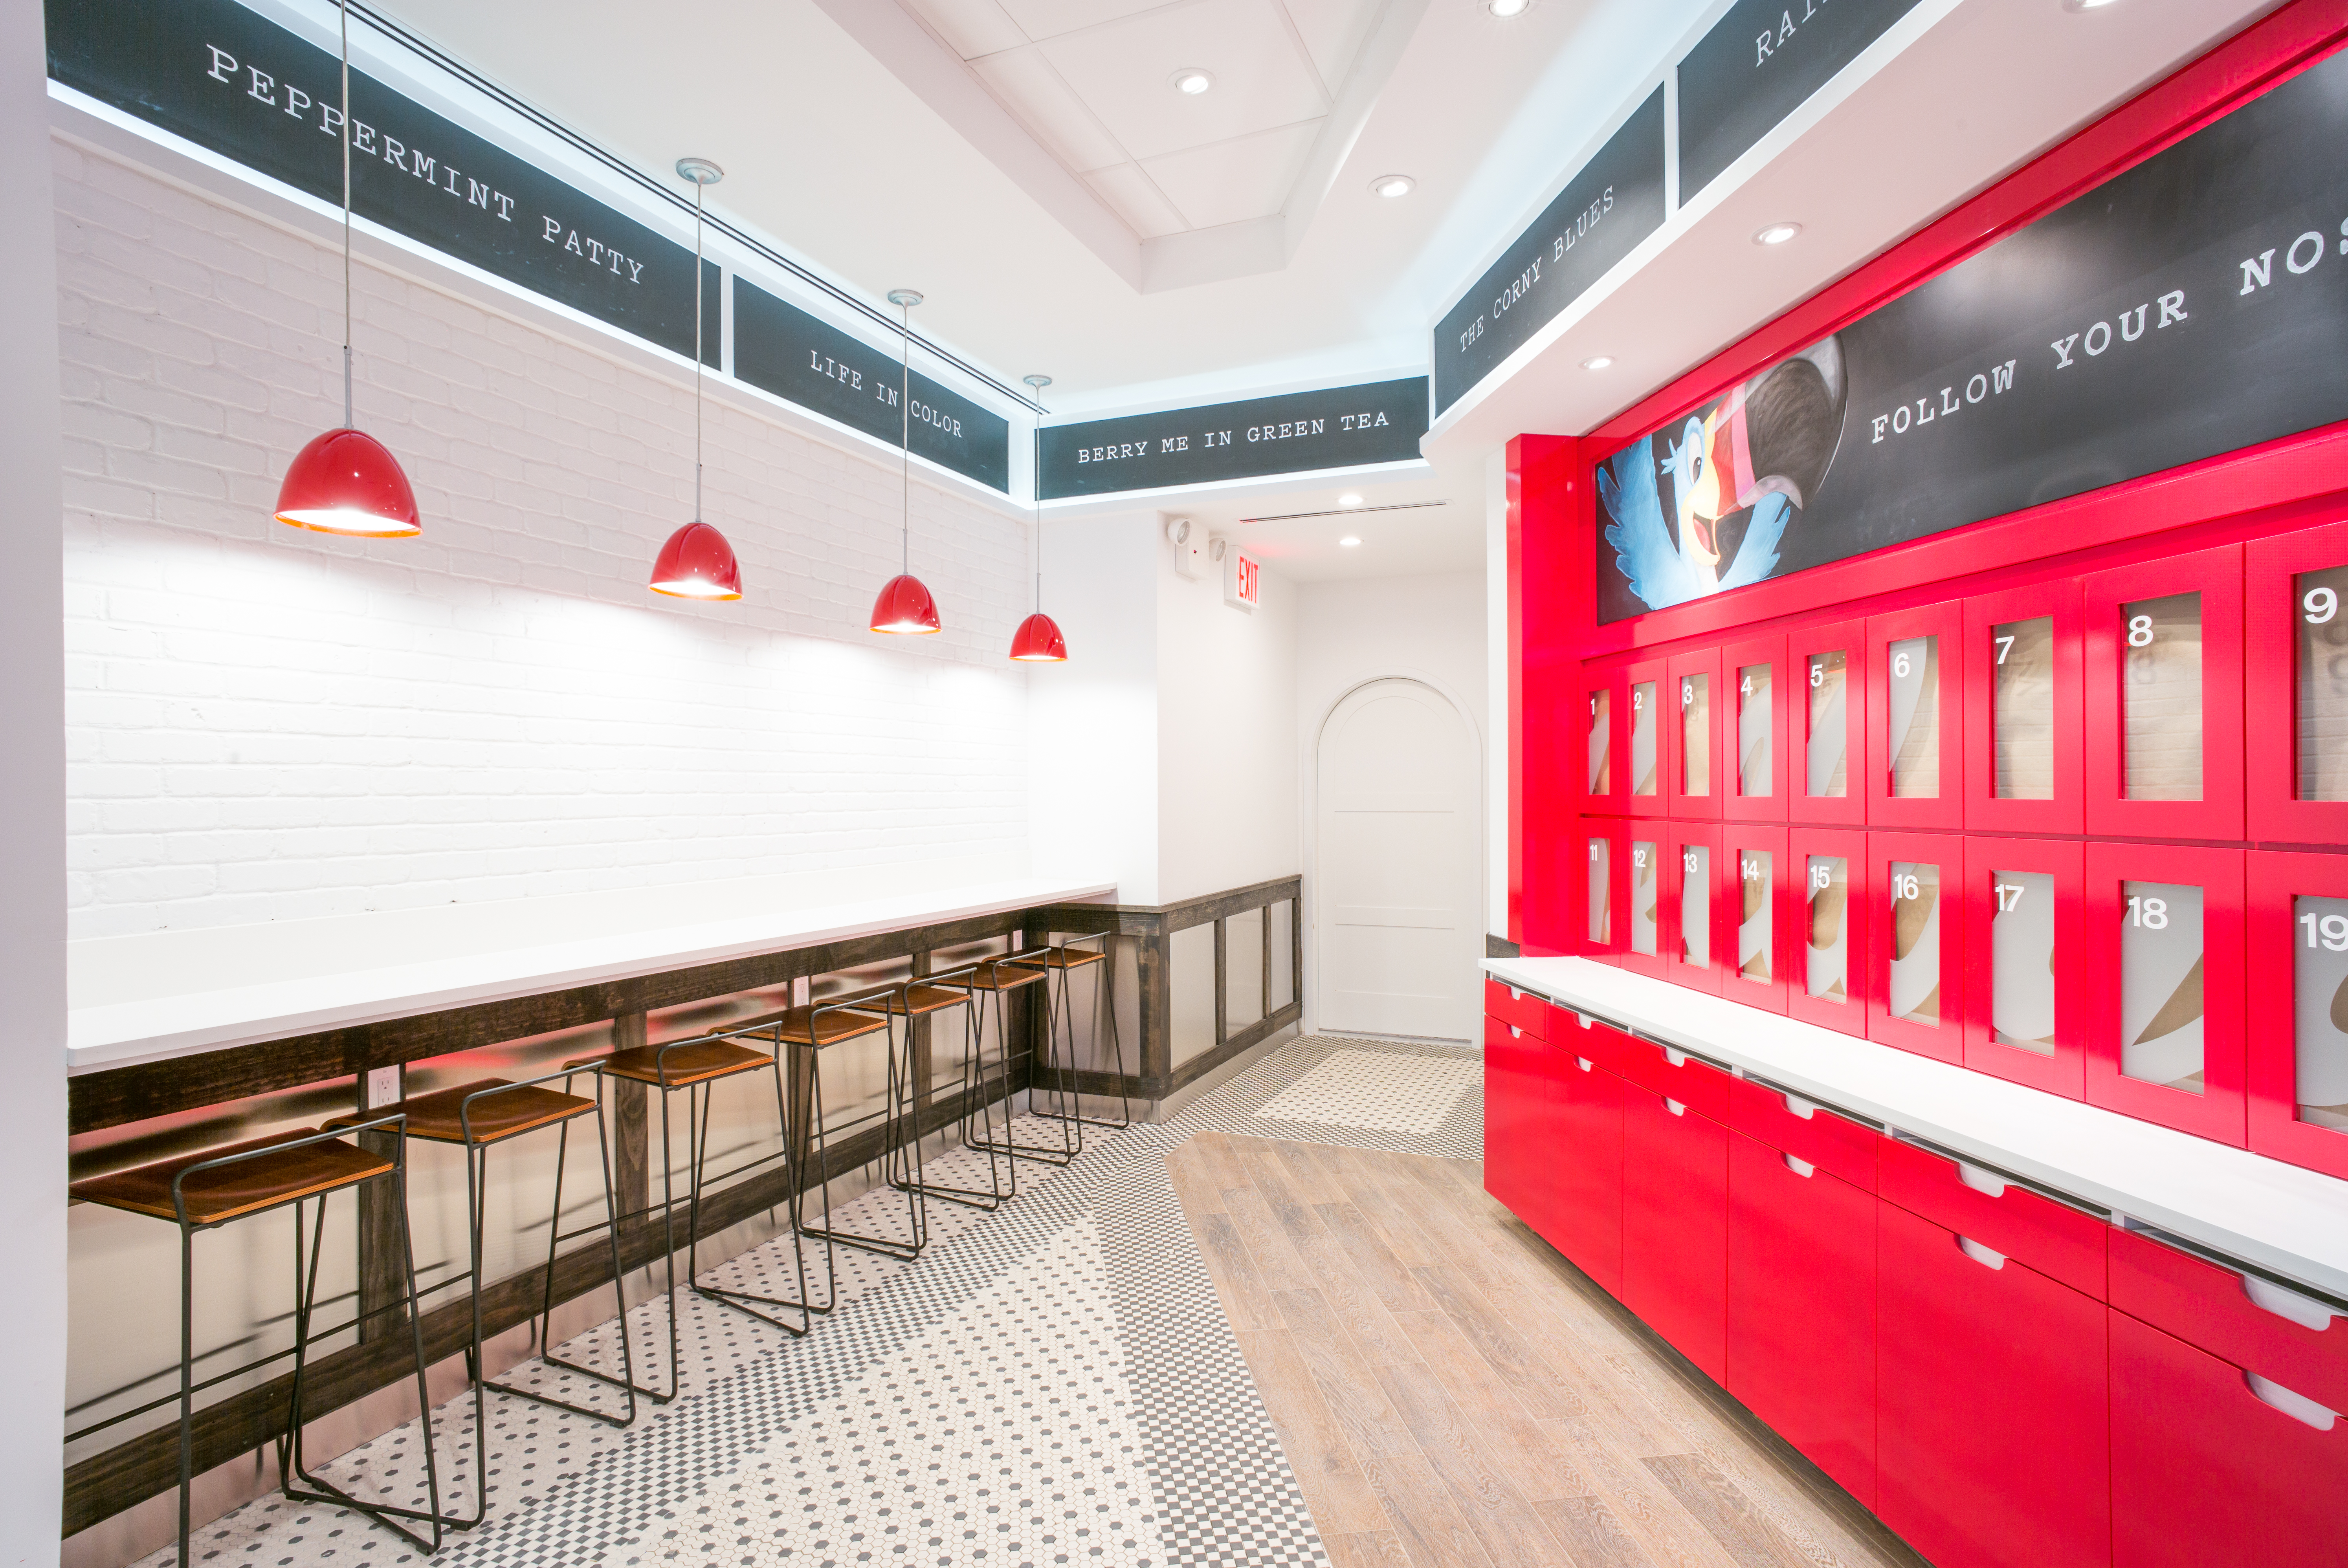 Christina Tosi and Anthony Rudolf Team Up With Kellogg's For Permanent Times Square Cereal Restaurant